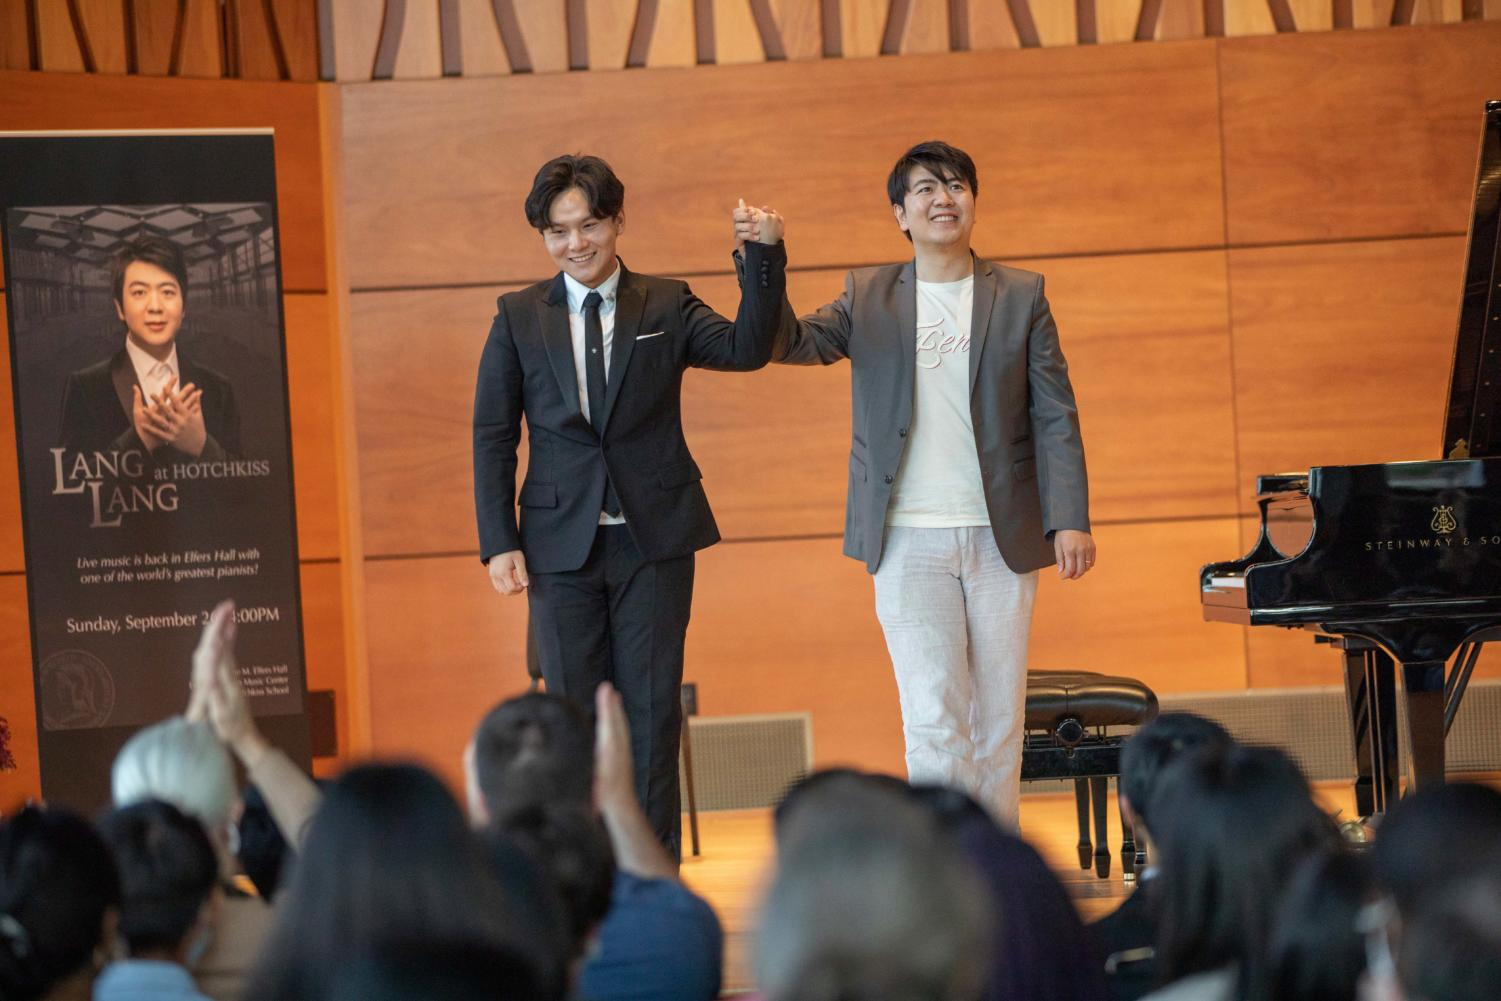 The crowd applauds after Chen and Langs performance.